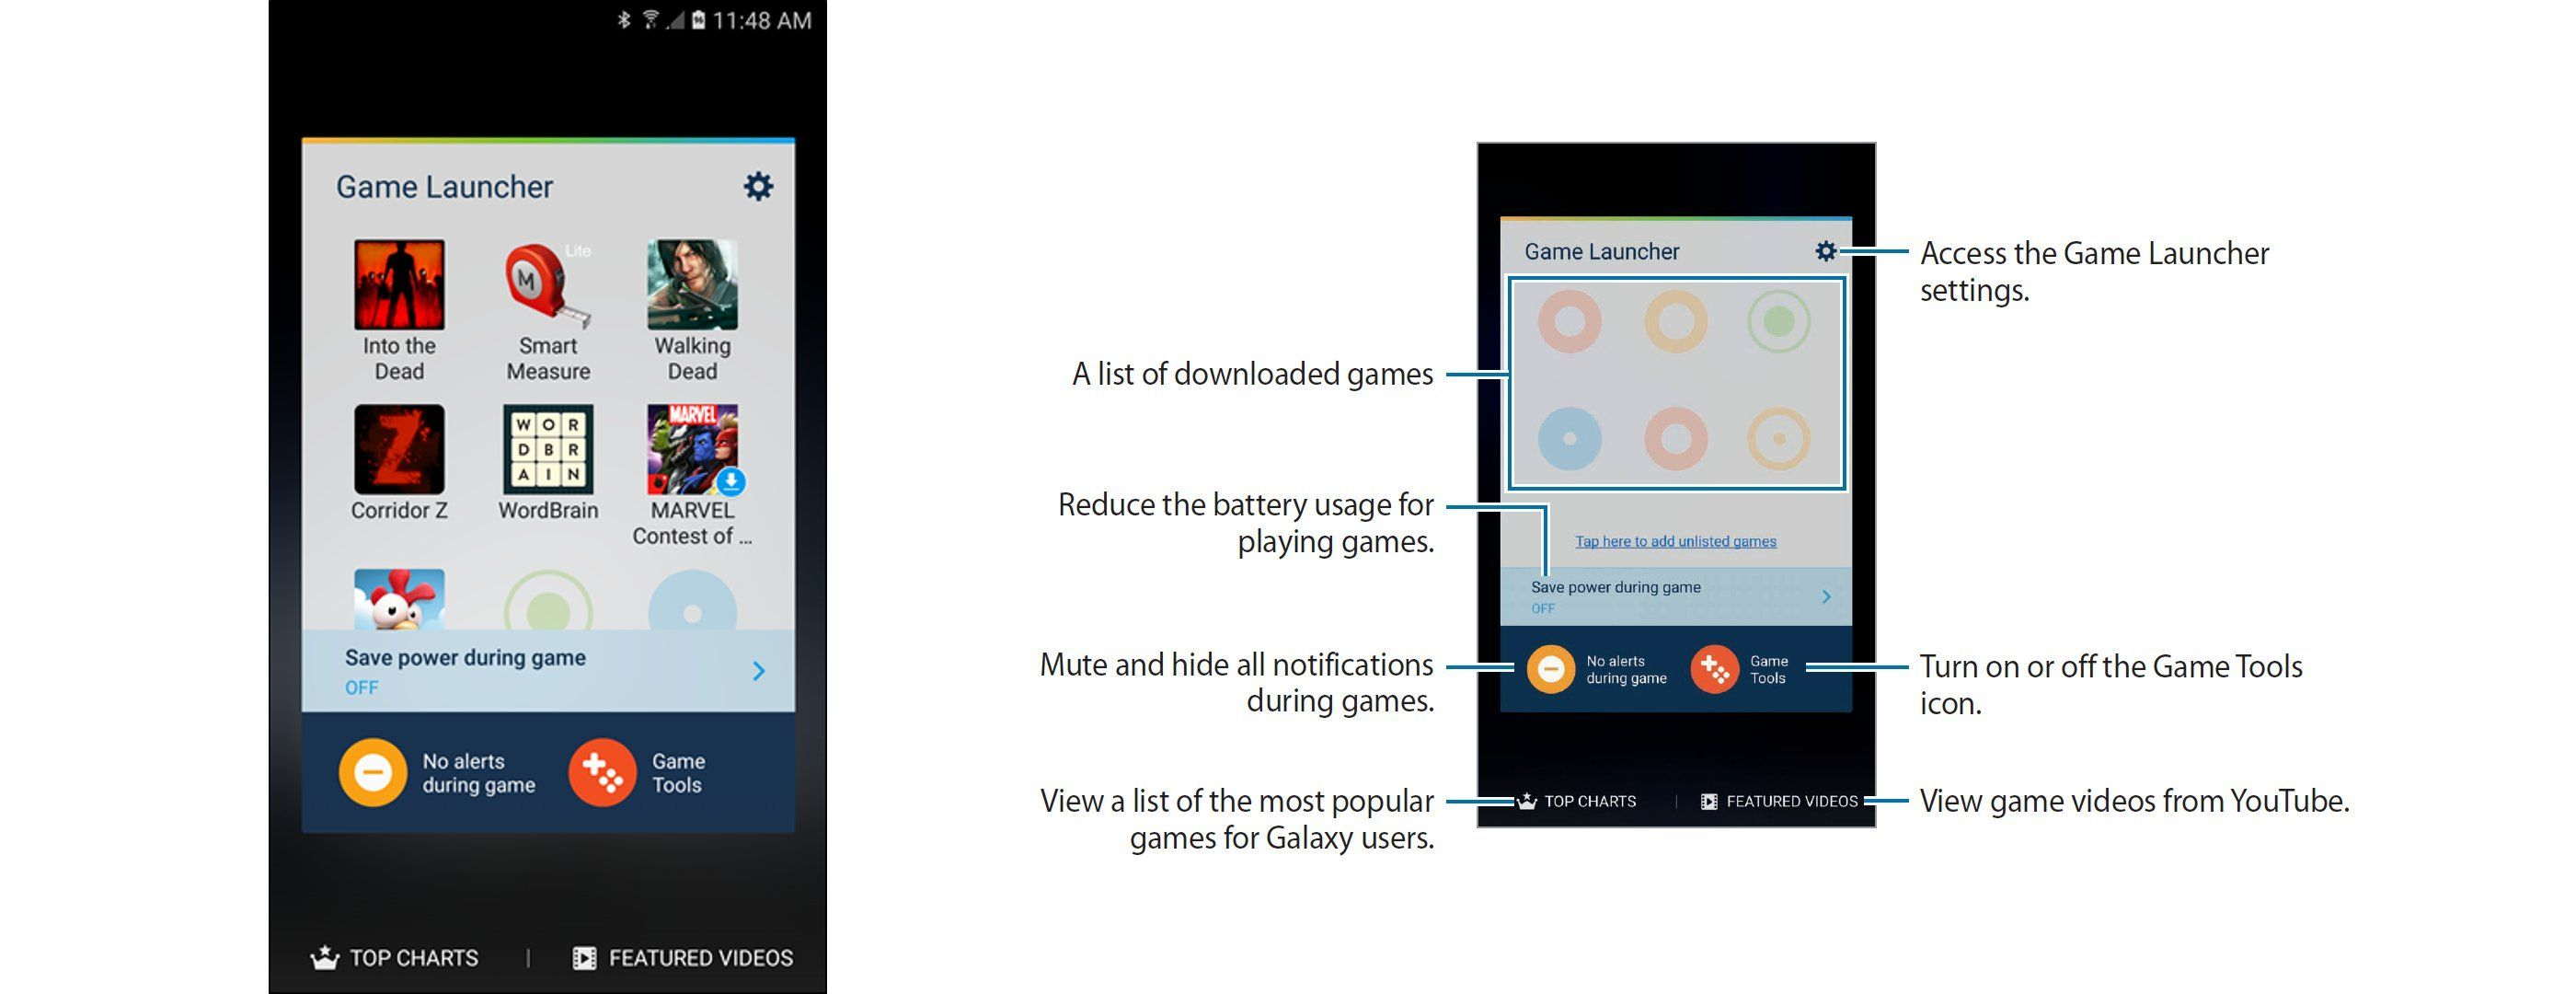 Samsung Game Launcher Icons Explained